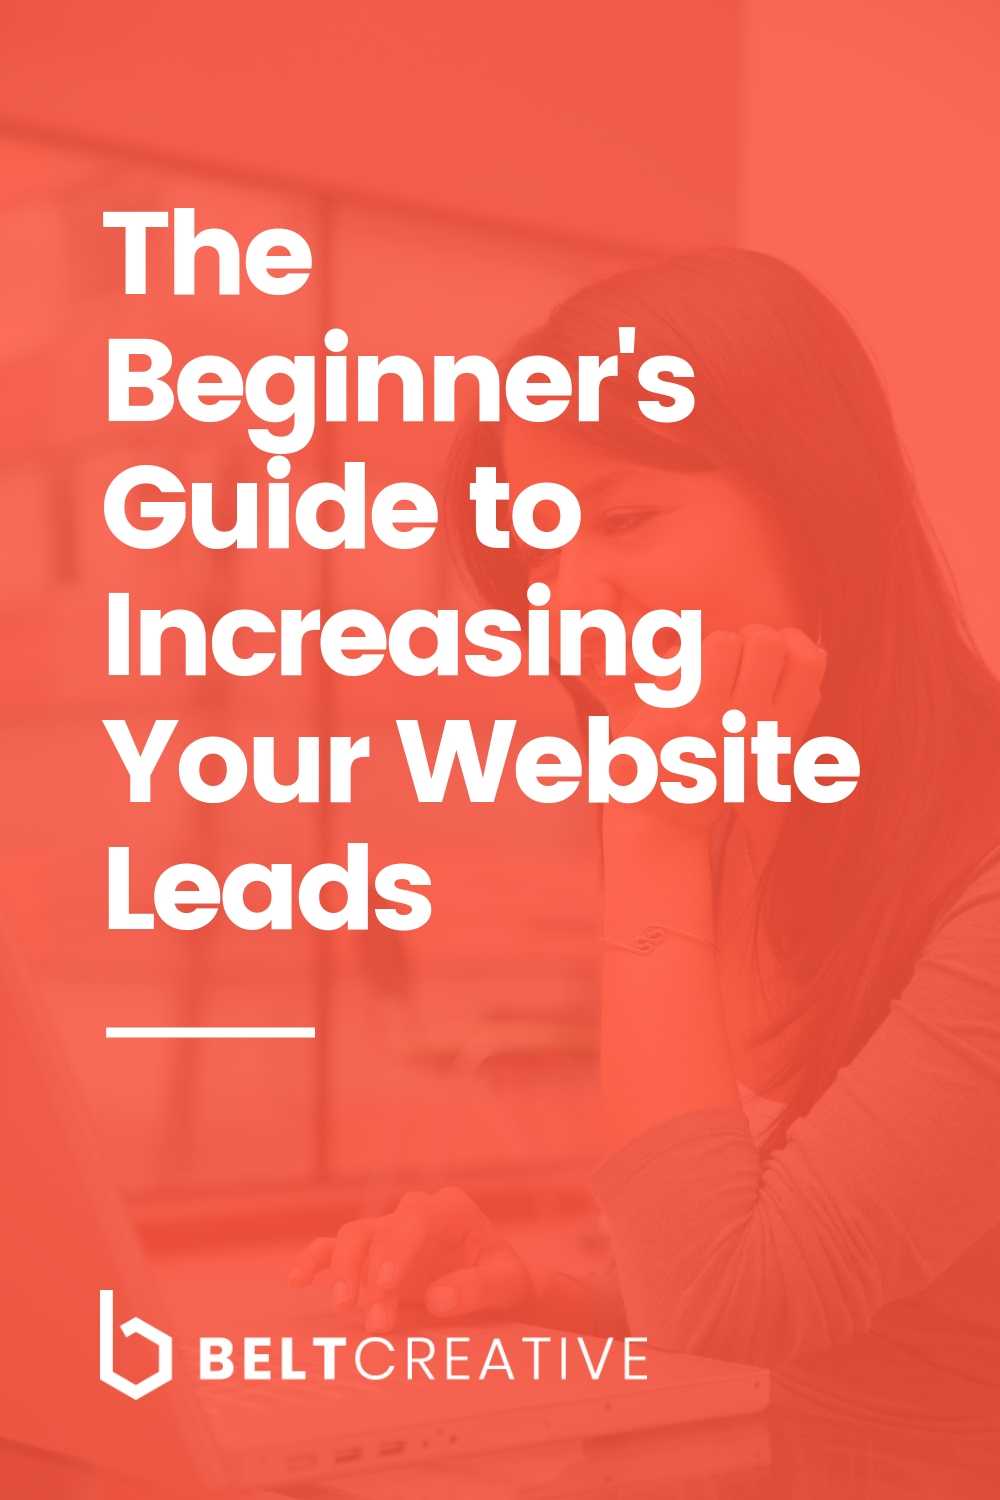 The Beginner's Guide to Increasing Your Website Leads.jpg